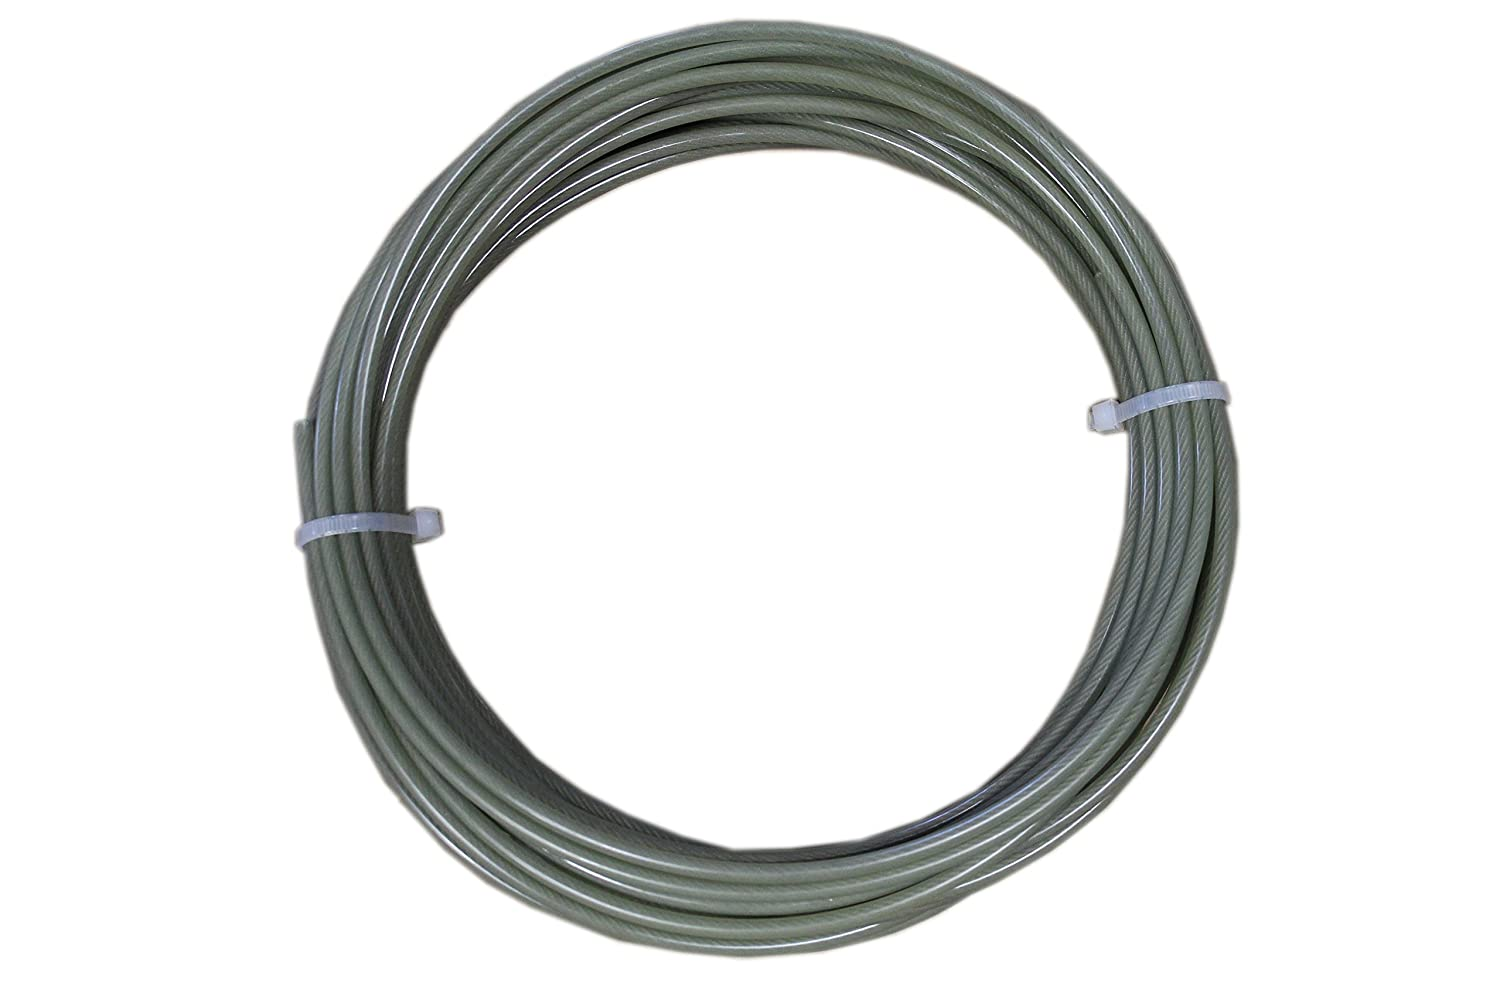 4-38SC100LH x 100 ft. B//A PRODUCTS CO Winch Cable,Steel,3//8 In